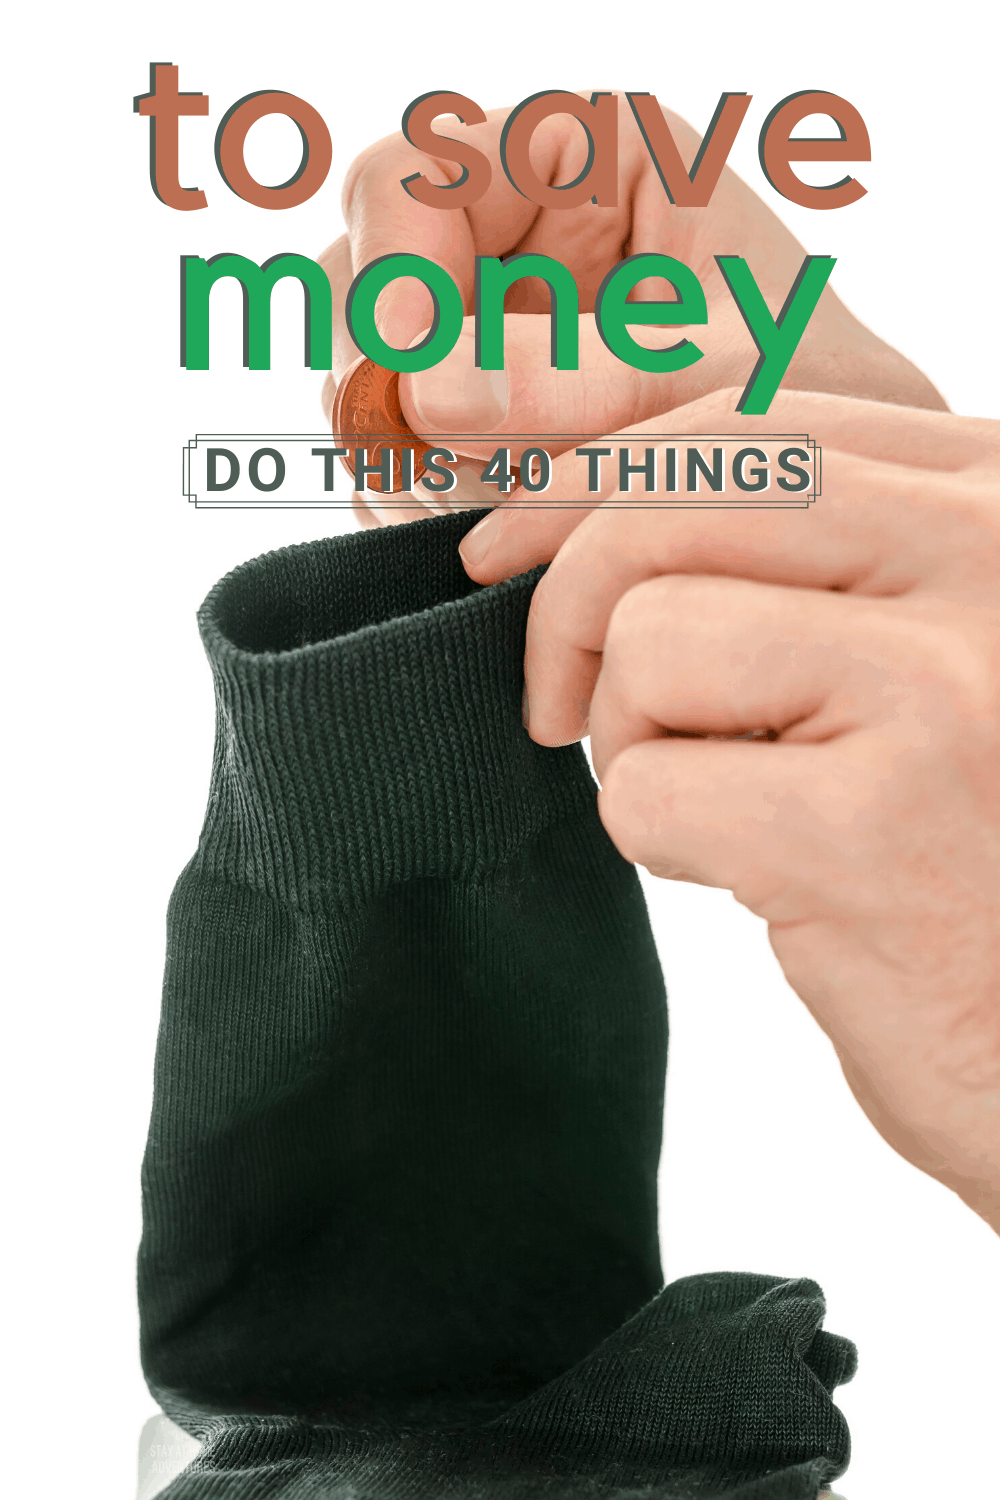 Learn how to reduce expenses and save money with these 40 ways to save money from just about everything things you can do to things you never thought about. via @mystayathome